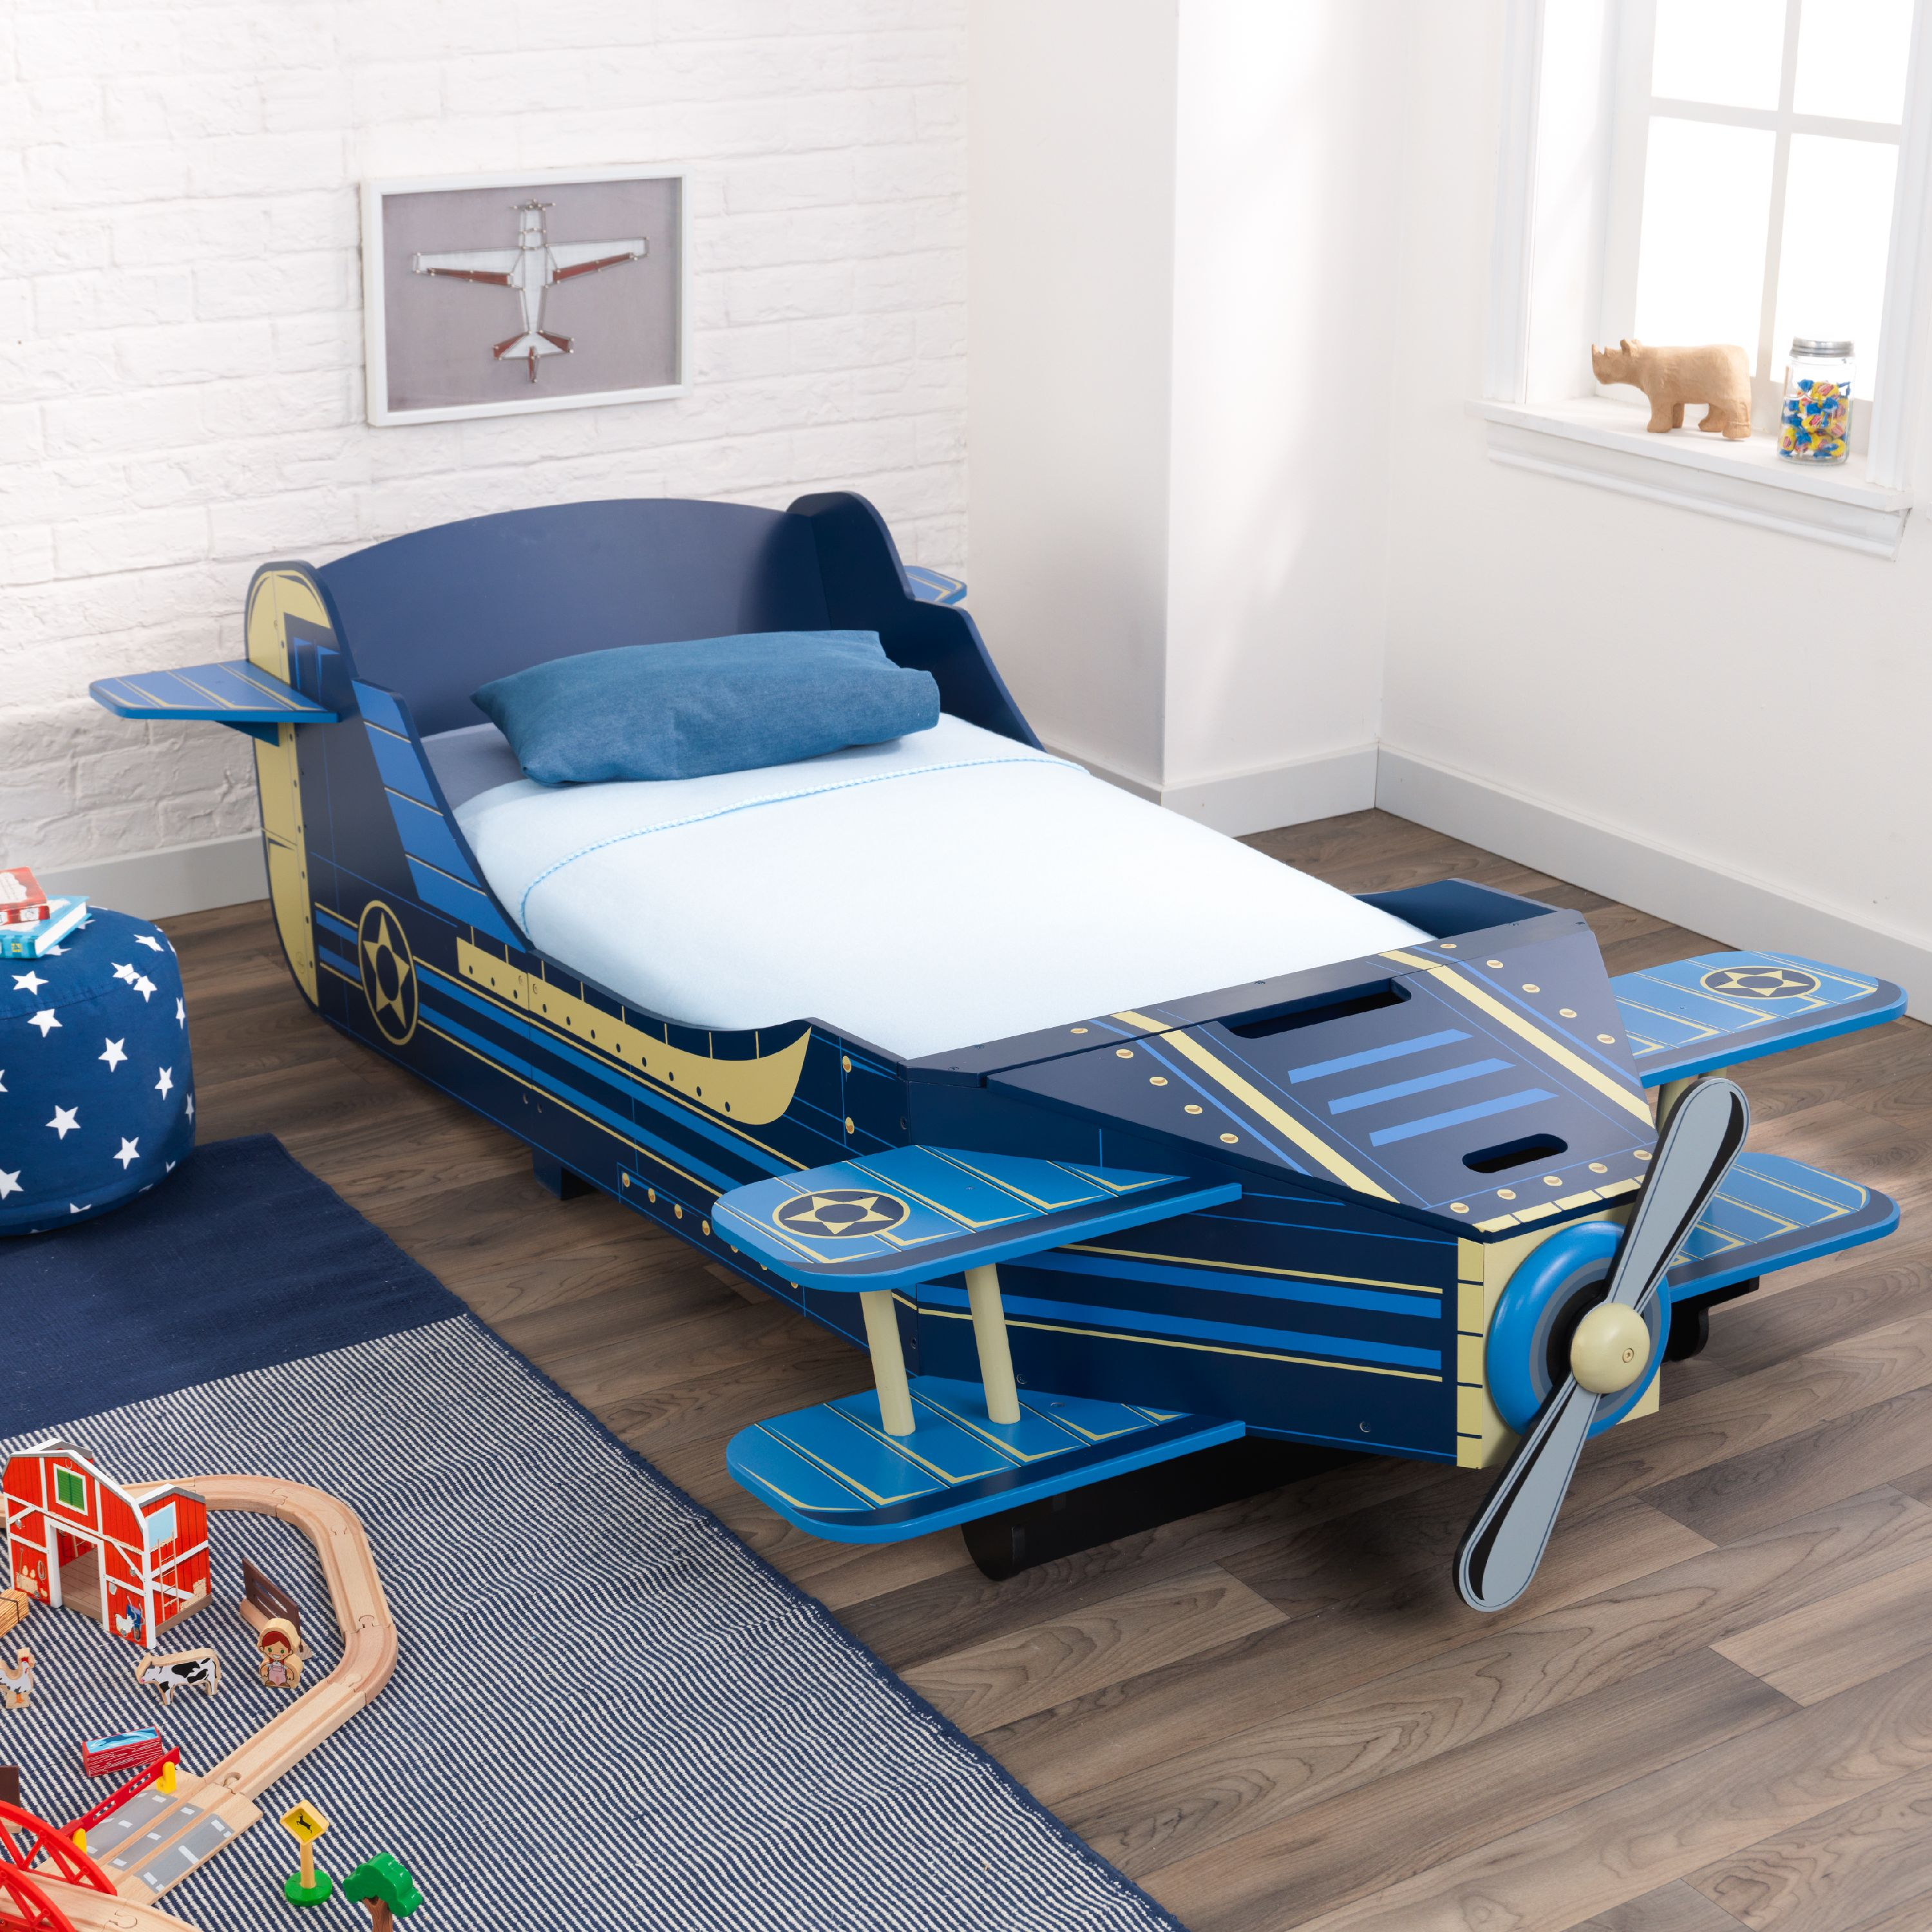 KidKraft Wooden Airplane Toddler Storage Bed, Blue, With Bed Rails